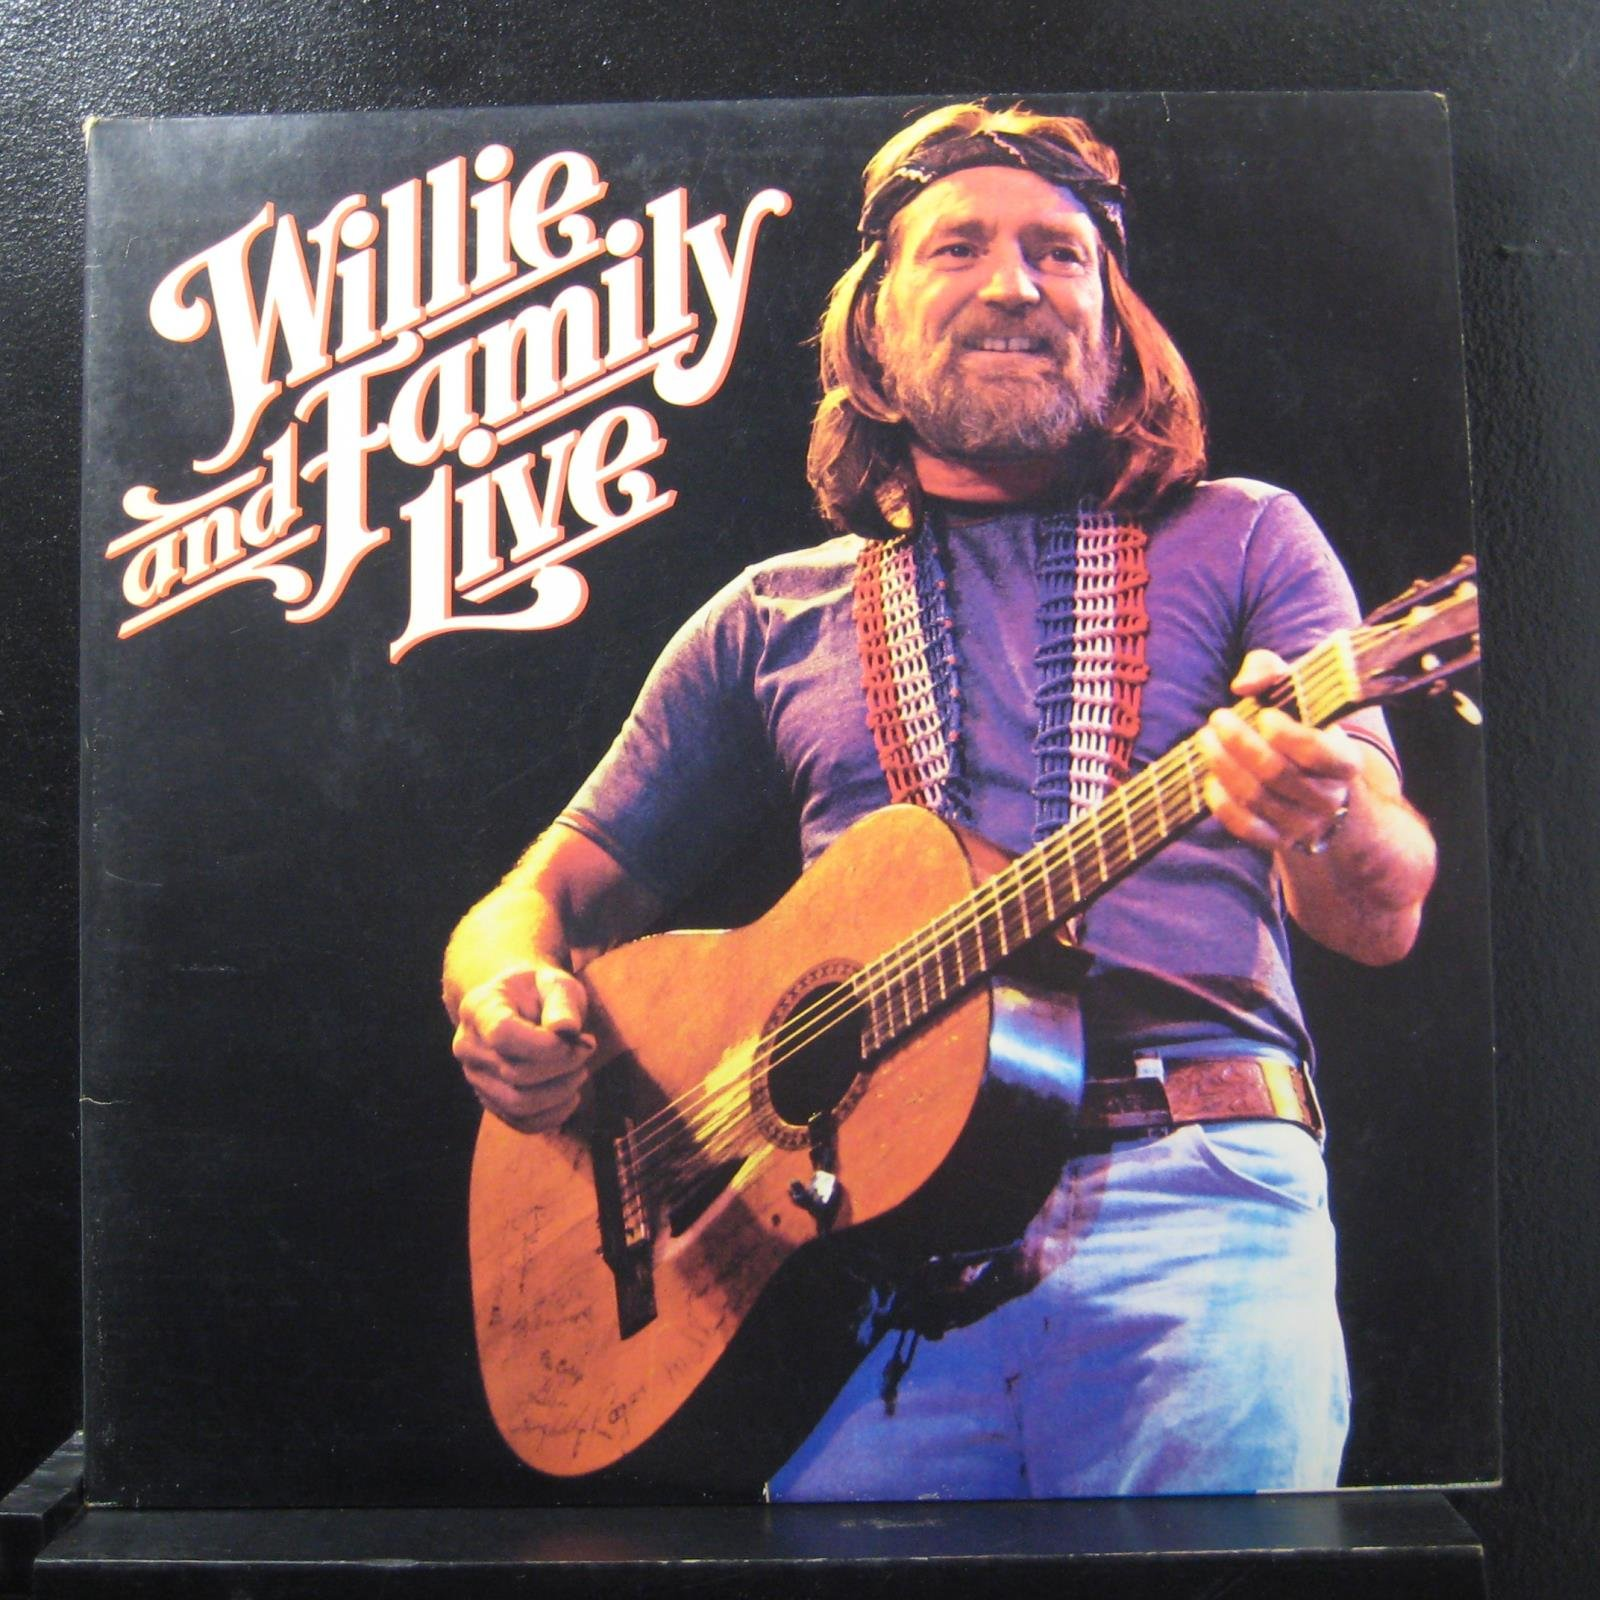 Willie & Family Live